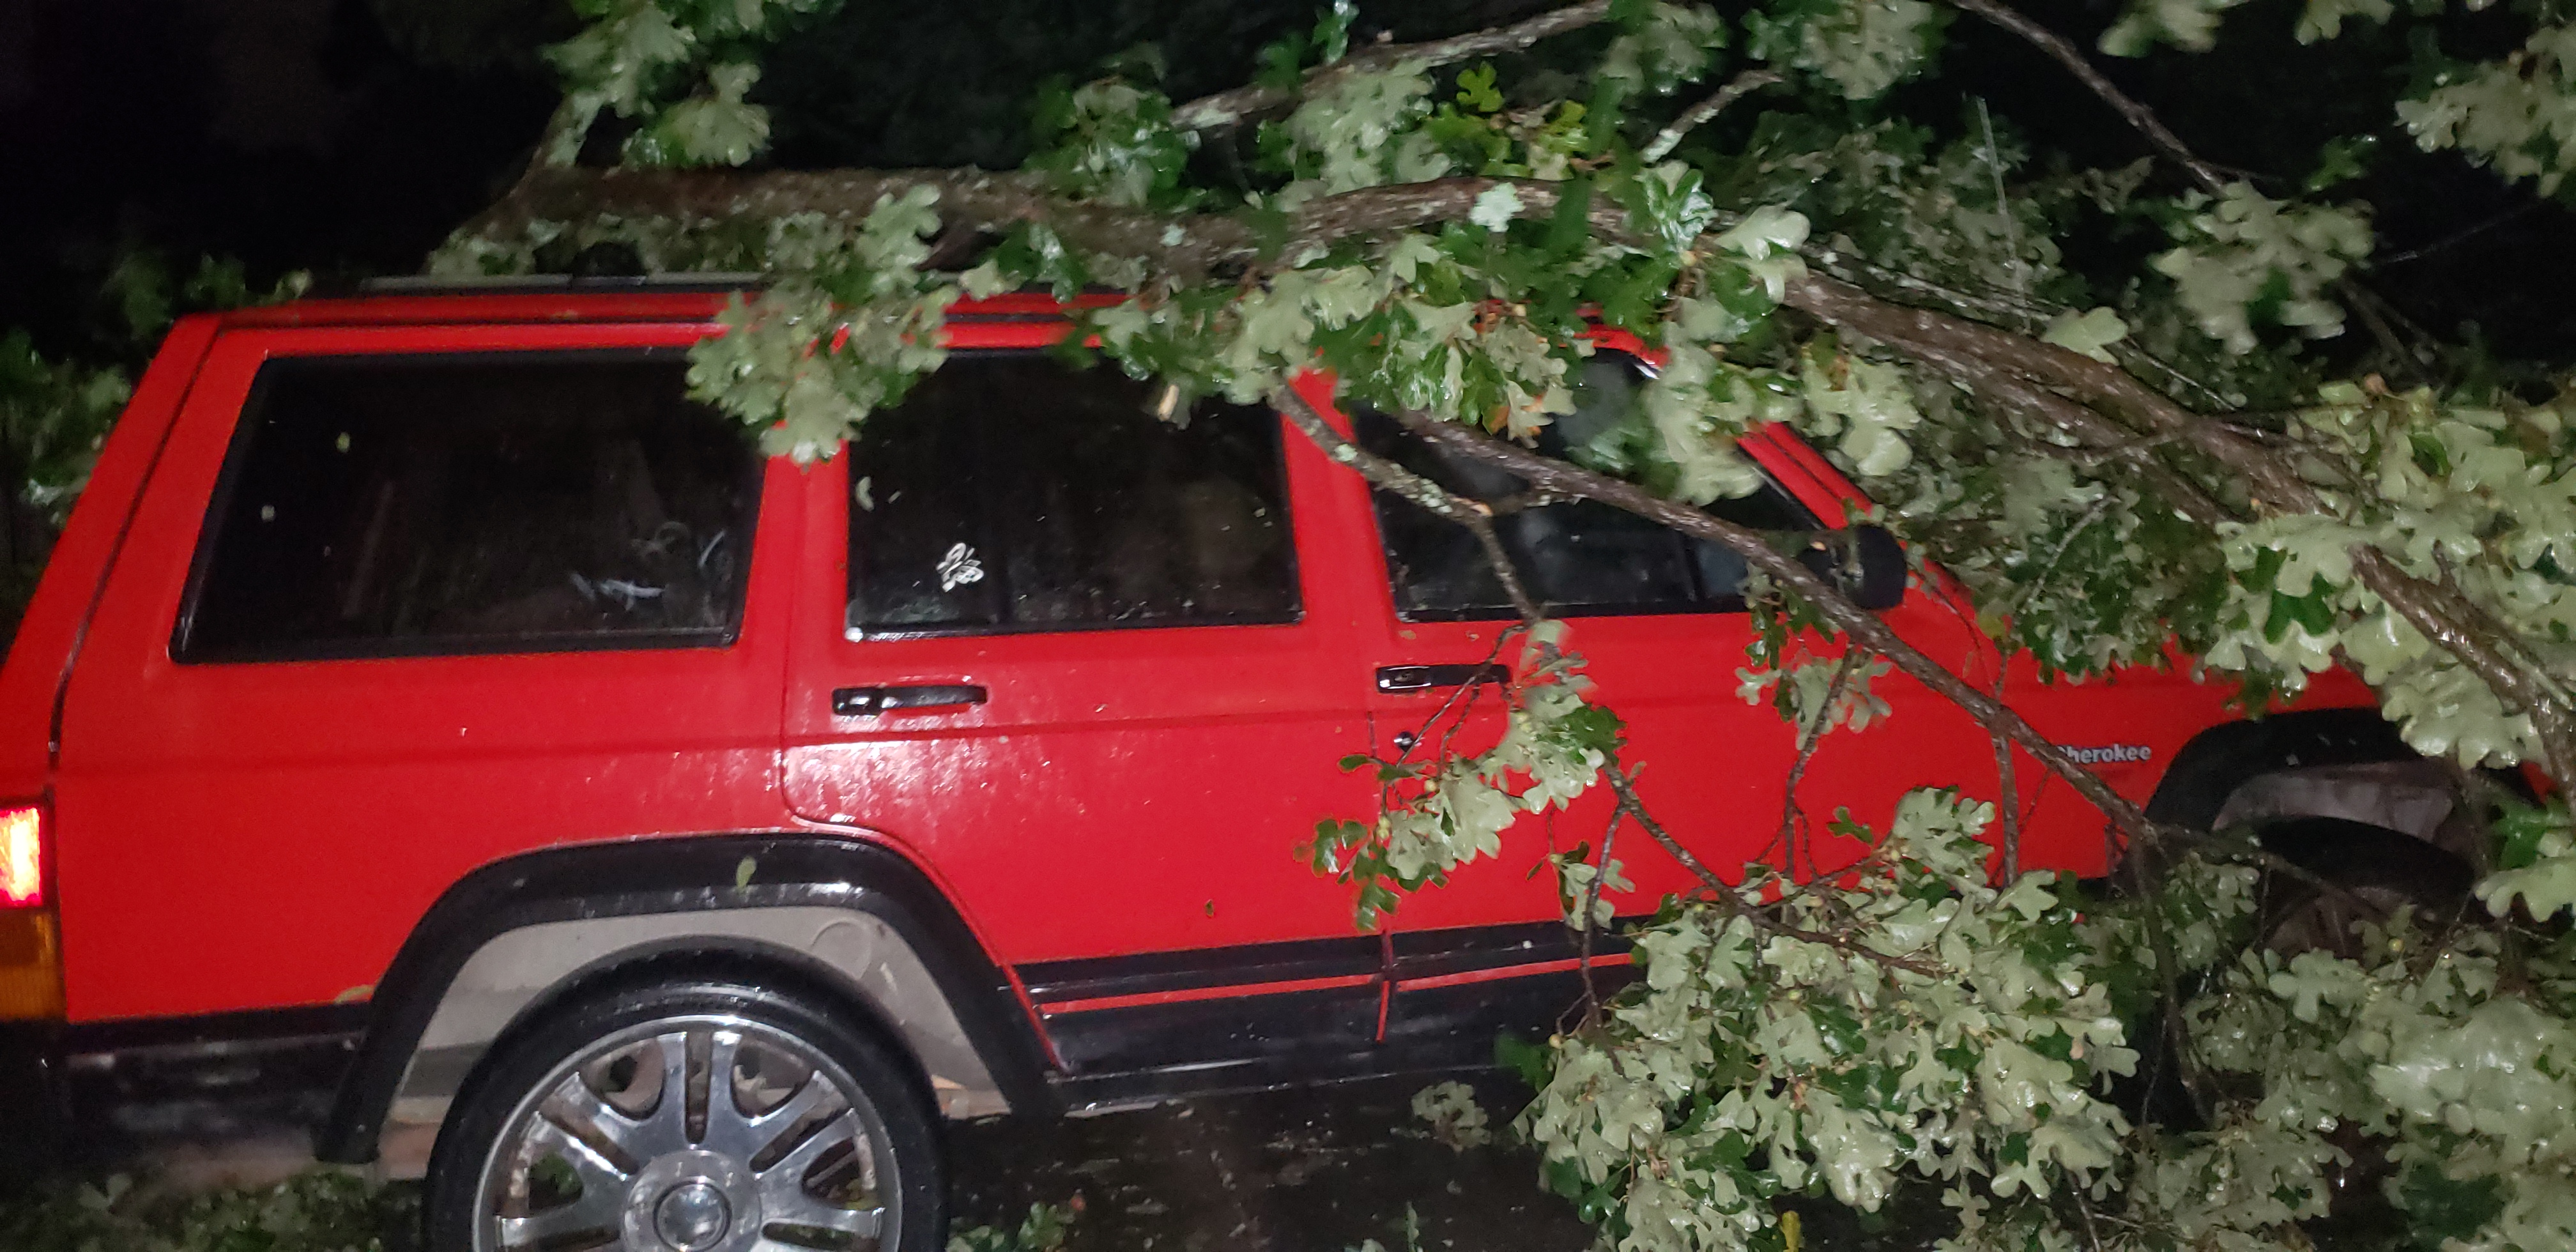 "<div class=""meta image-caption""><div class=""origin-logo origin-image wtvd""><span>WTVD</span></div><span class=""caption-text"">A tree fell on a Jeep and busted the tires on the left side and possibly broke the driver's door, according to the owner (ABC11 Eyewitness - Tonya jean)</span></div>"